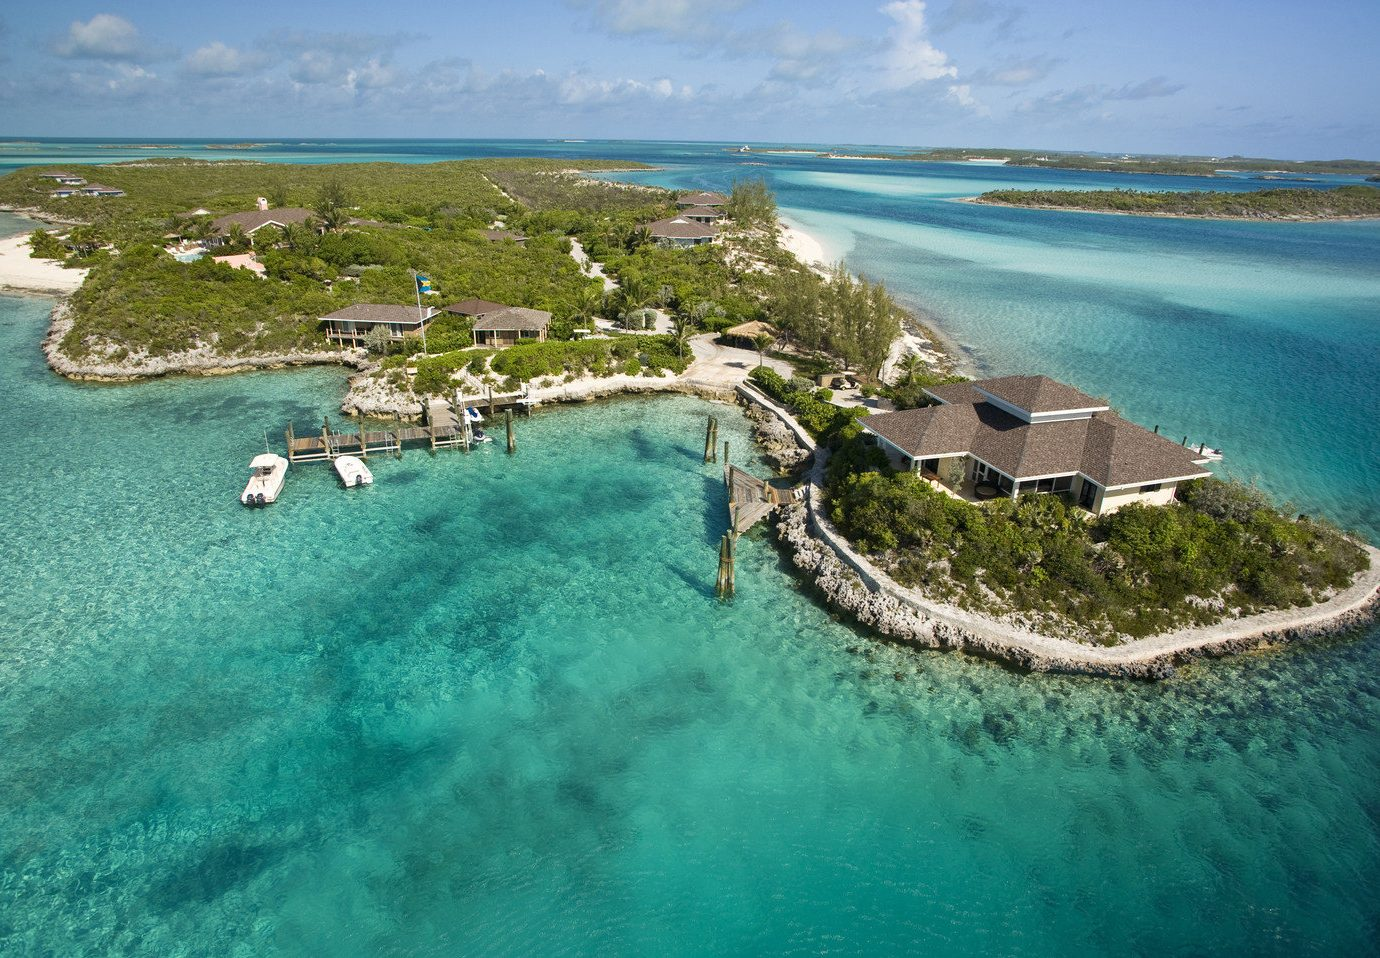 All-Inclusive Resorts Hotels Luxury Travel water outdoor Nature Sea archipelago landform geographical feature Ocean Coast caribbean islet vacation bay Beach shore Resort Island Lagoon aerial photography cape cove reef swimming pool atoll estate terrain tropics cay peninsula